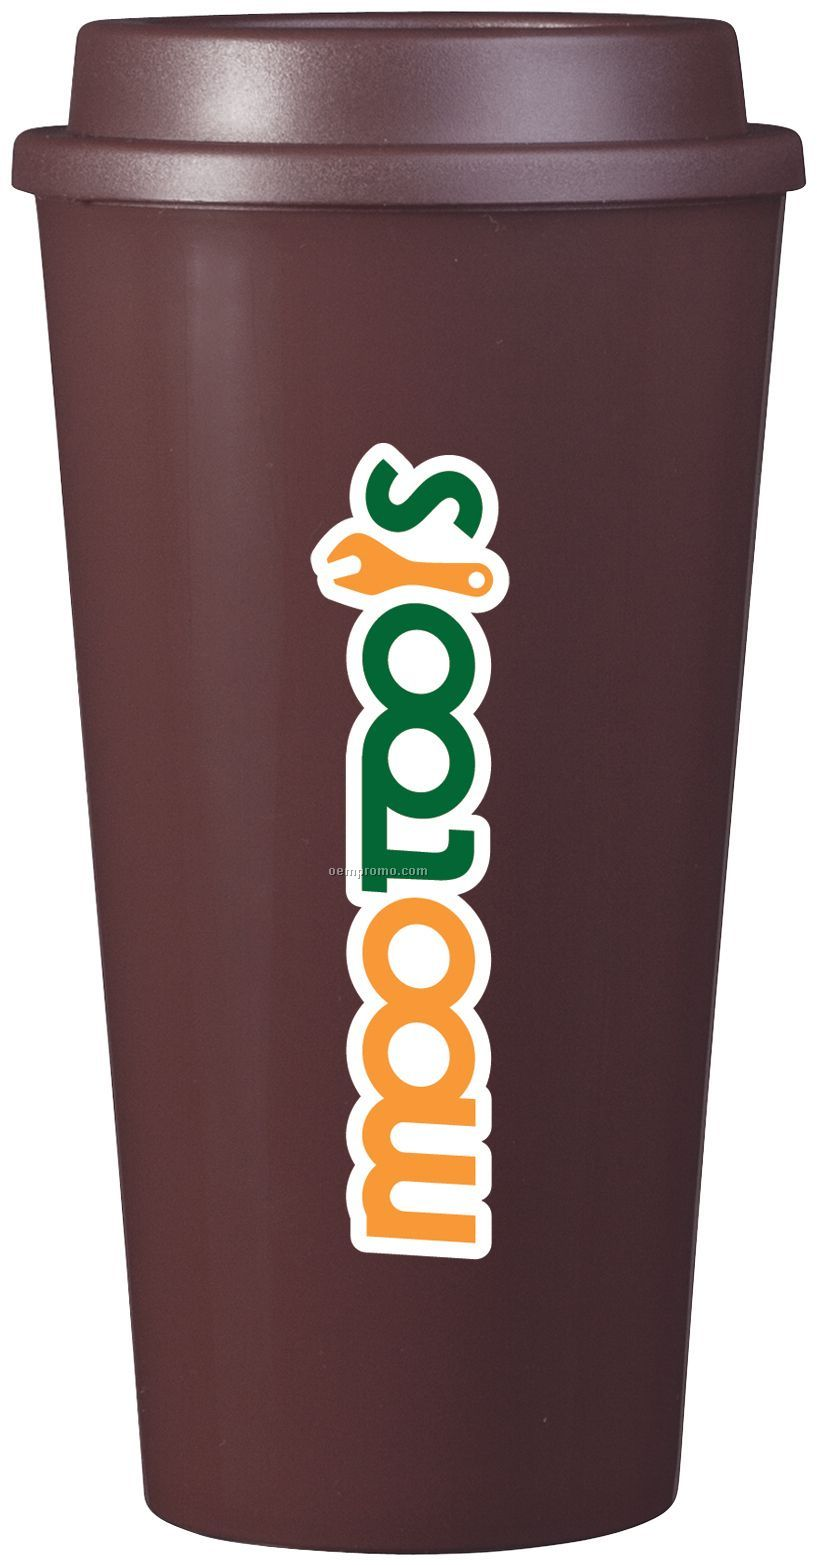 16 Oz. Brown Plastic Cup2go Cup